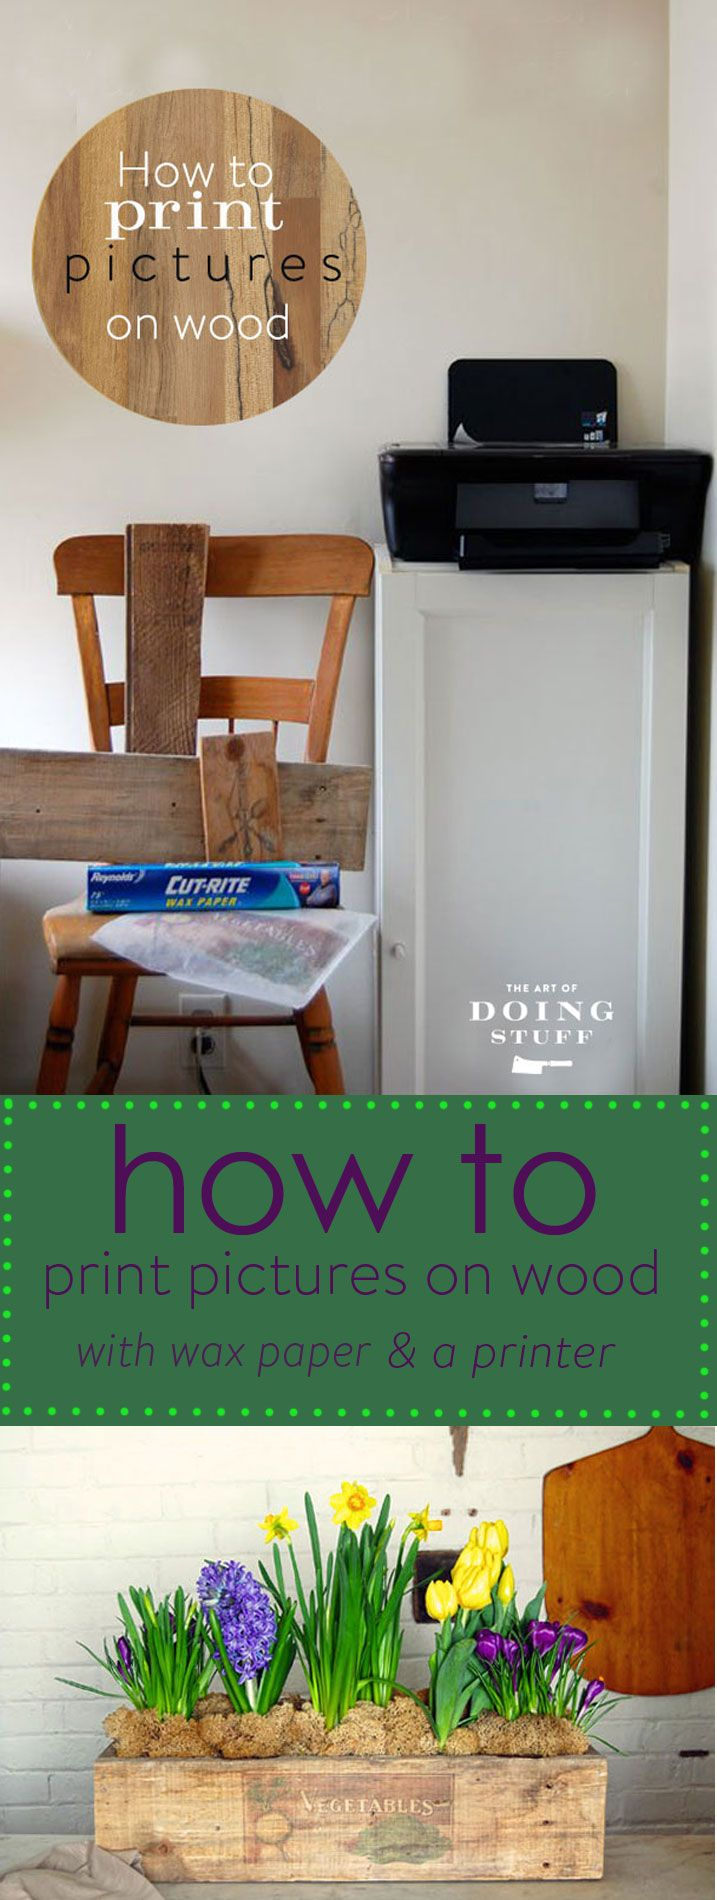 How to print pictures on wood with just wax paper and an inkjet printer. EASY and great results. The perfect DIY.